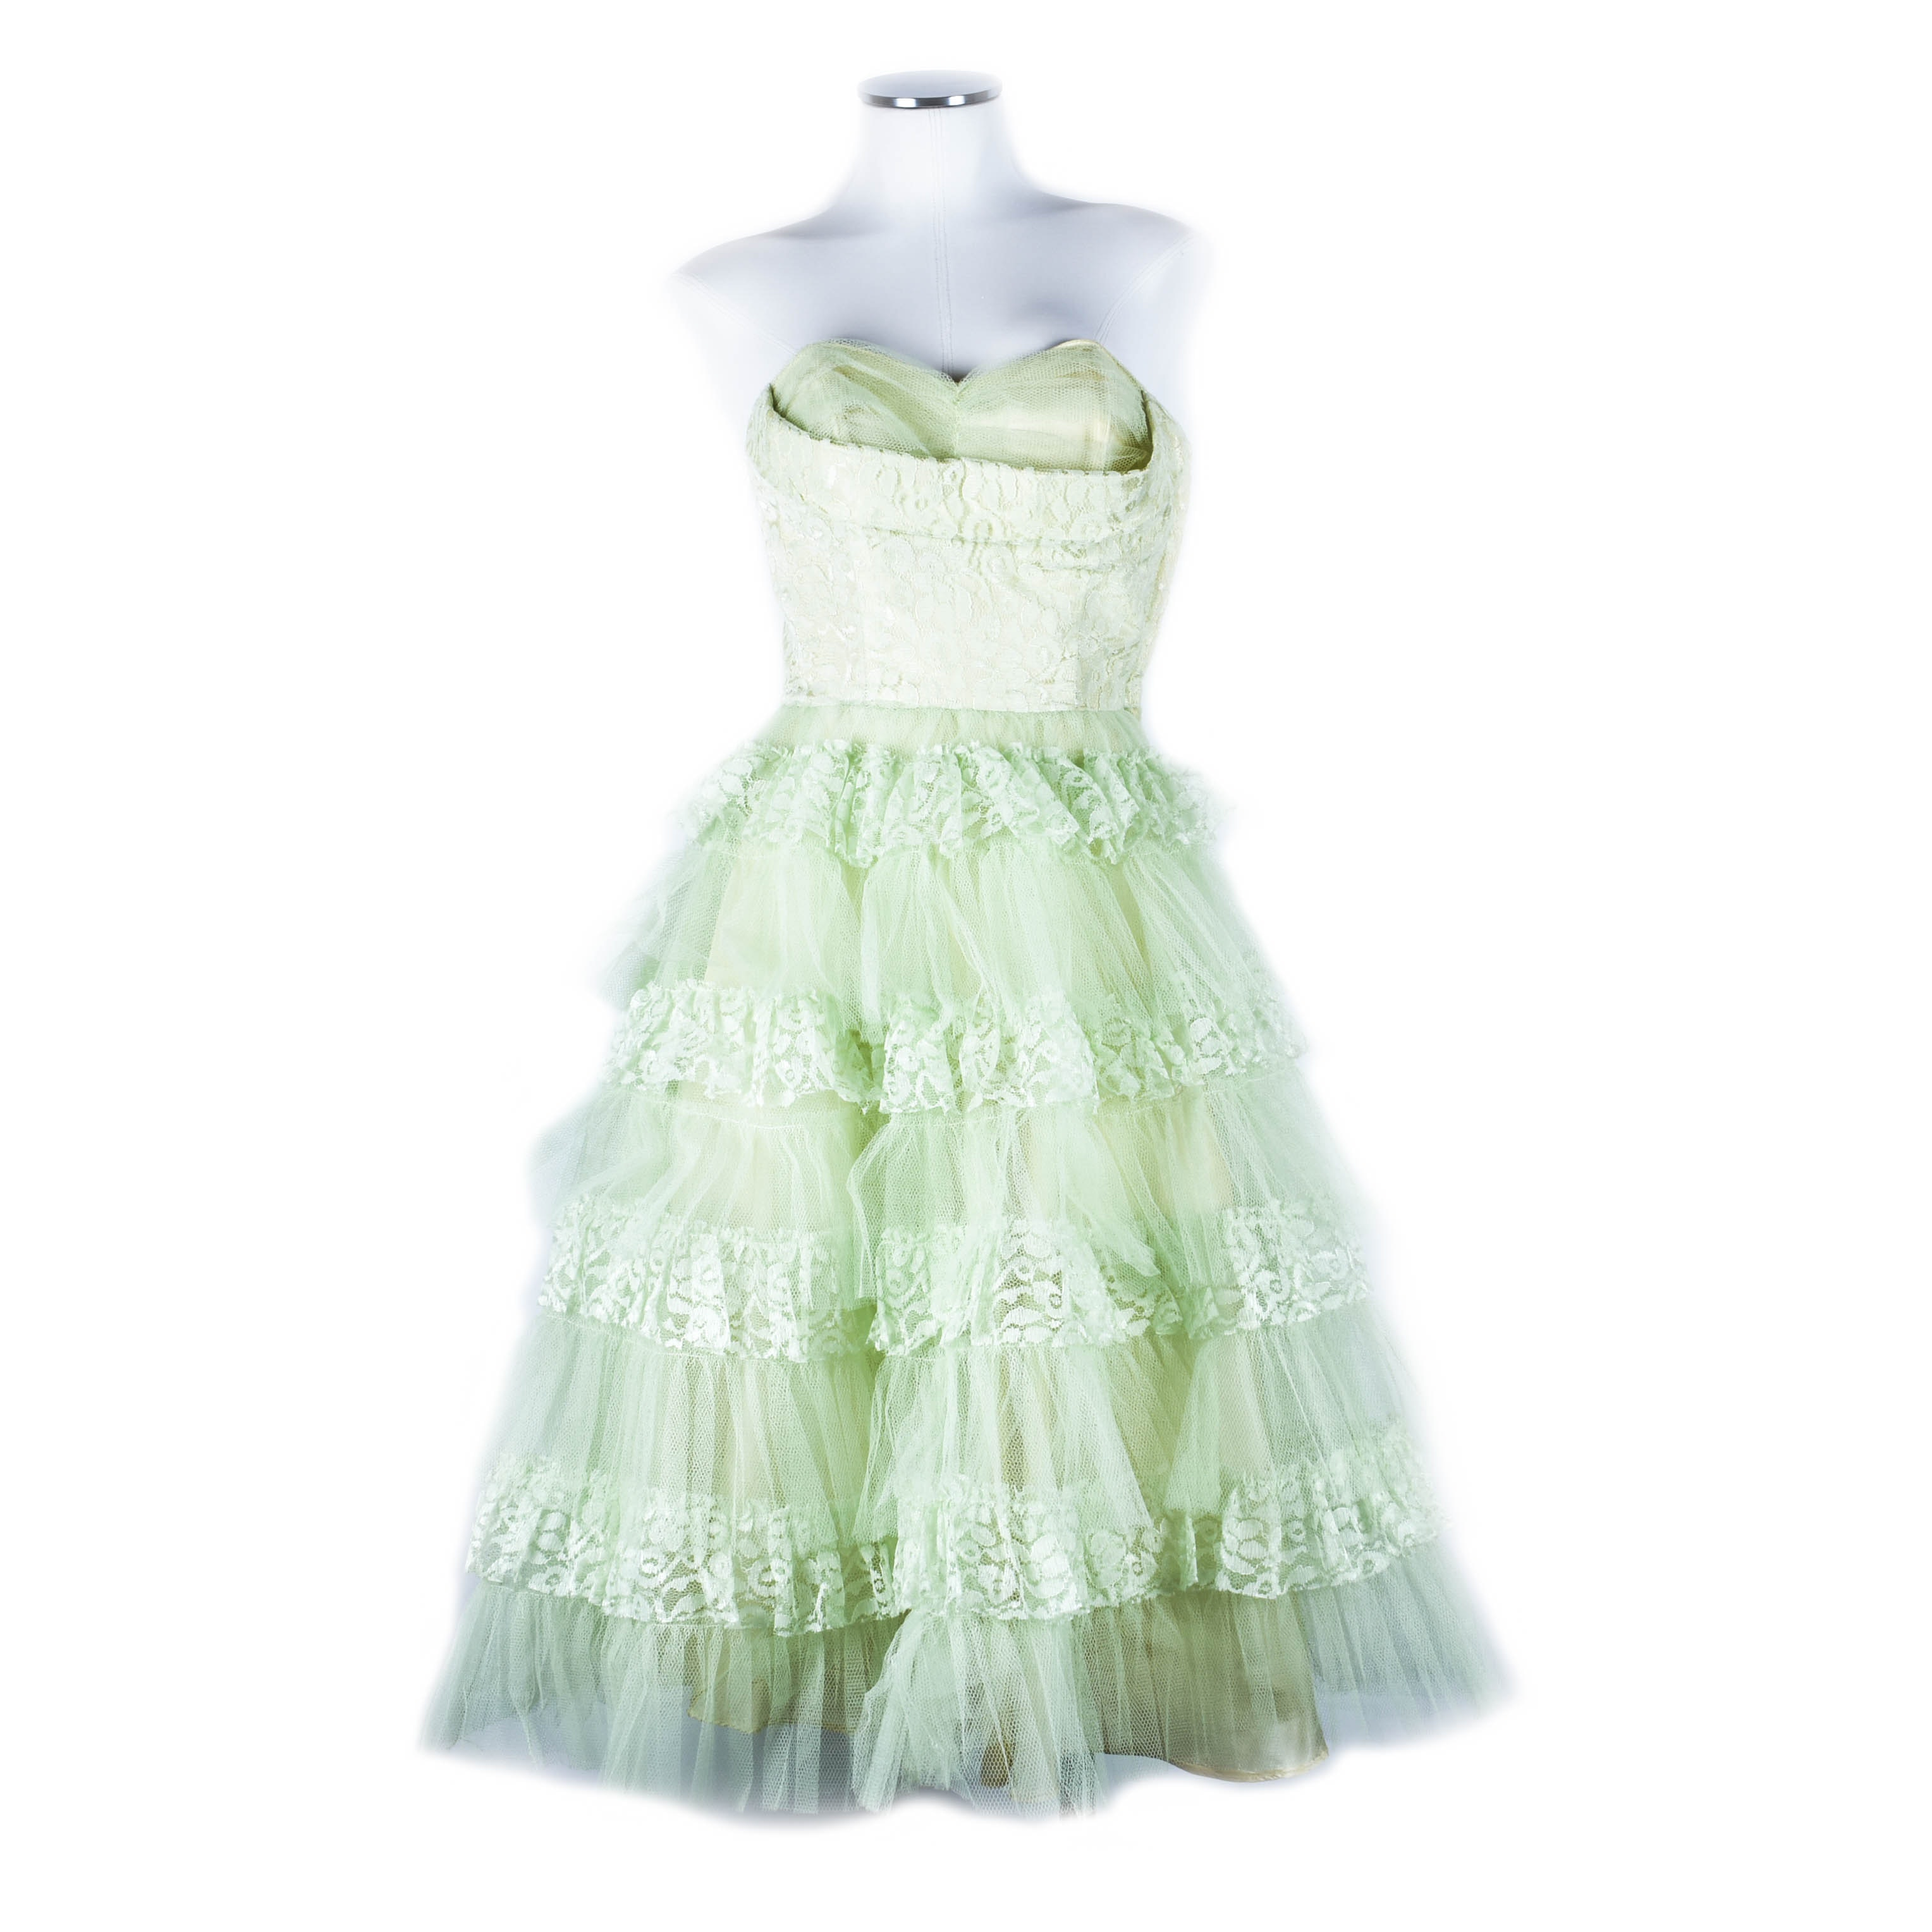 Vintage Lace and Tulle Party Dress